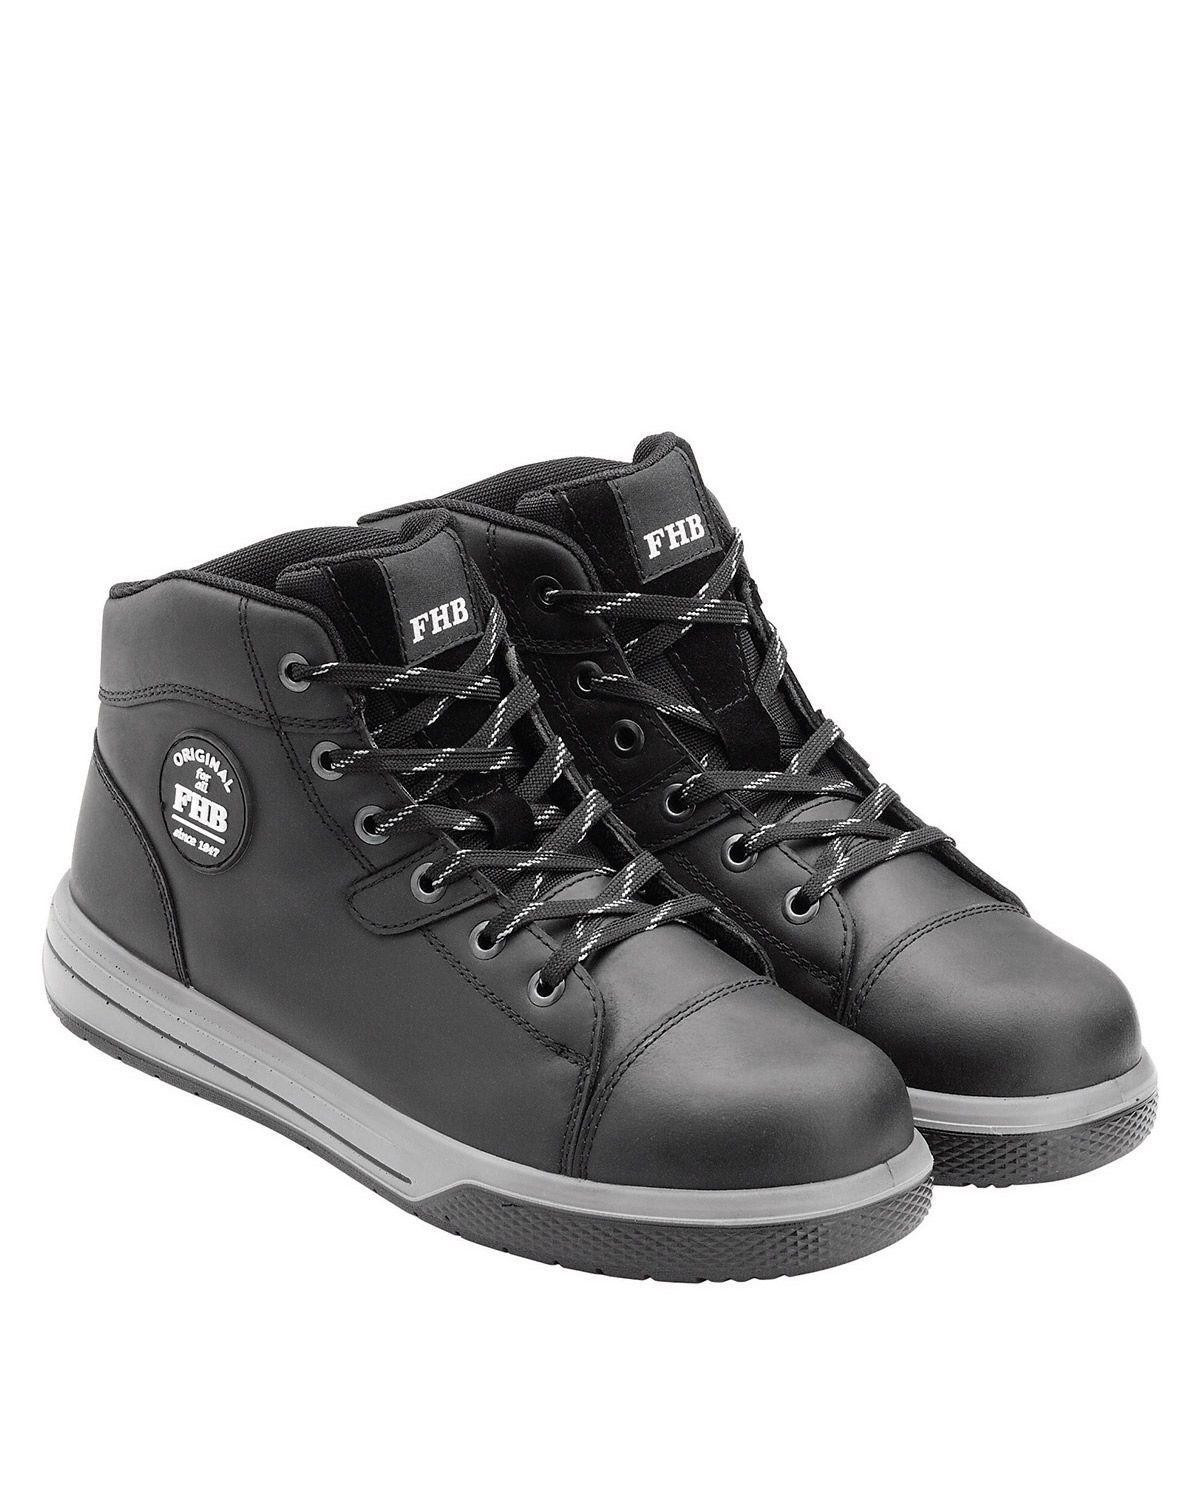 Image of   FHB High Top Sikkerhedssko - Linus (Sort, 40 EU / 6 UK)